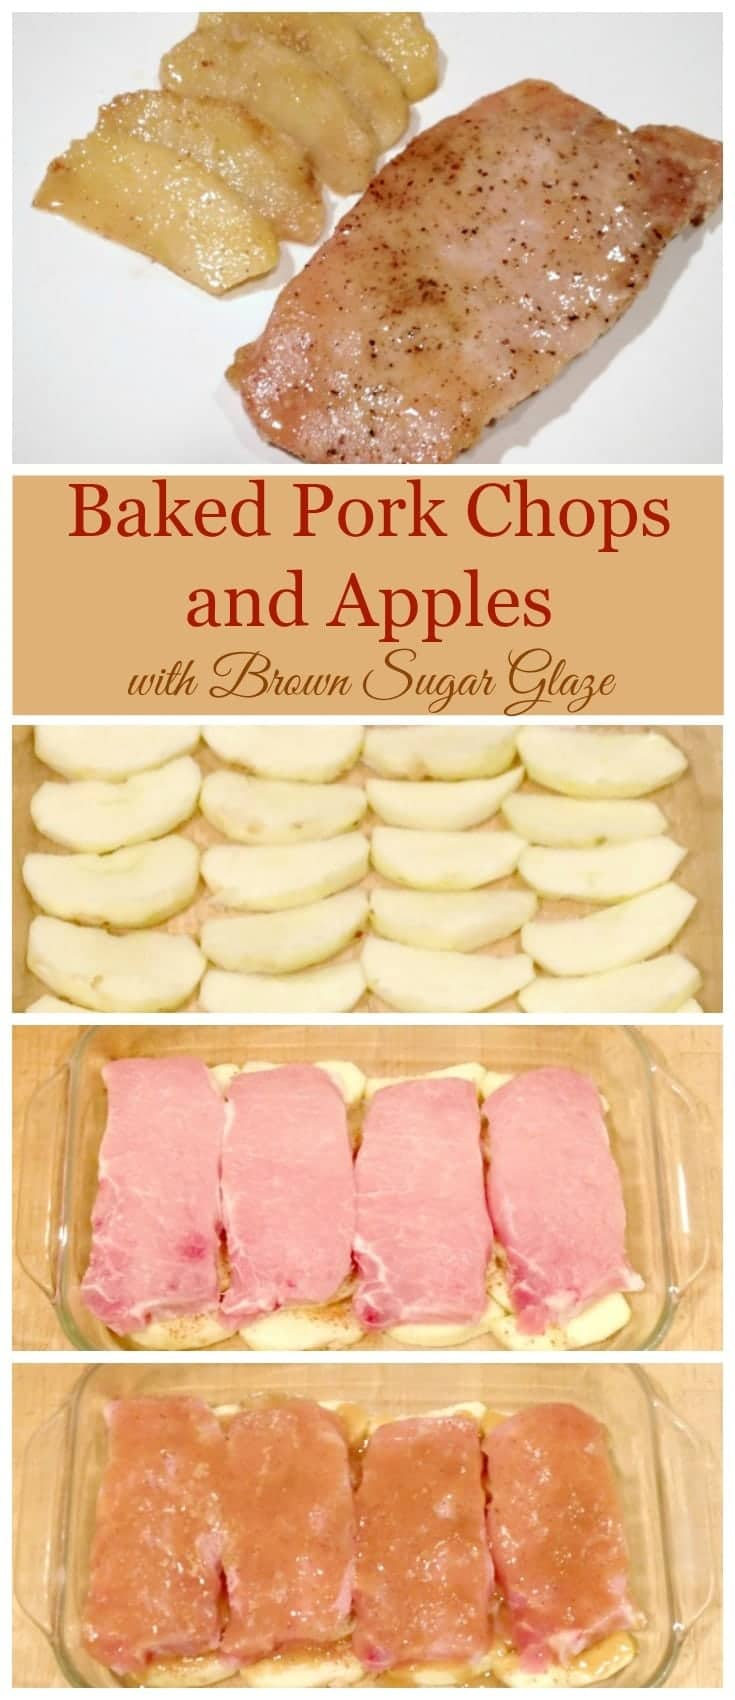 A simple dinner that kids will gobble up and beg you to make again! #porkchops #apples #easydinner via @wondermomwannab